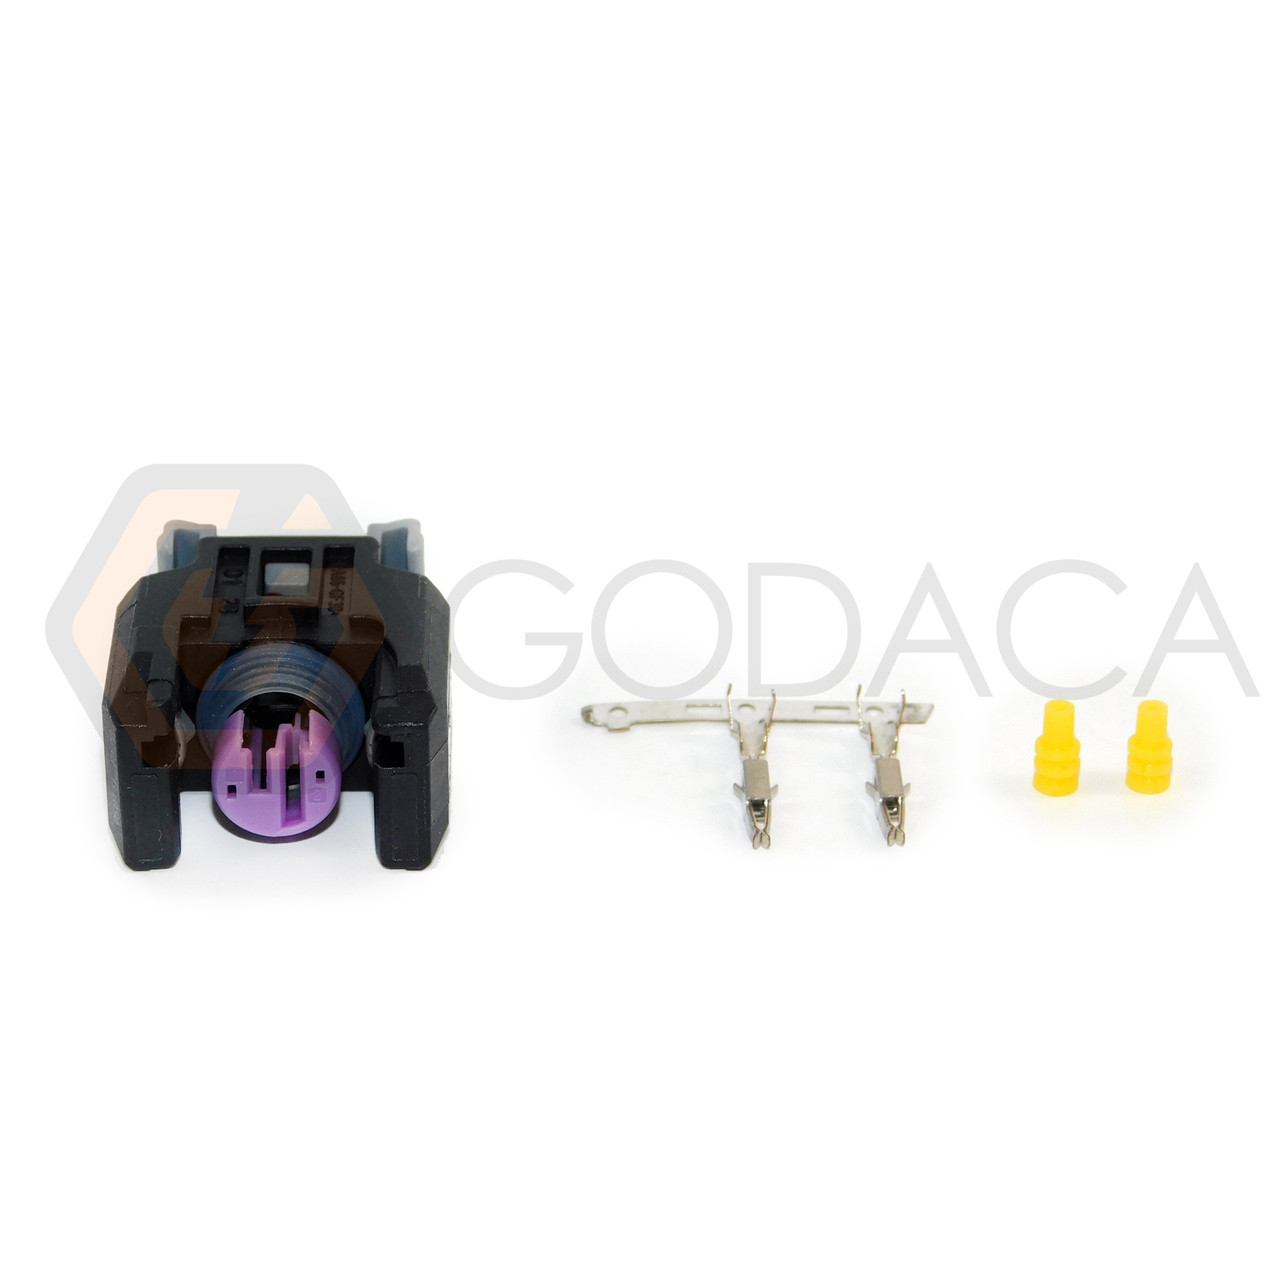 medium resolution of 1x connector 2 way 2 pin for fuel injector 13816706 delphi w out wire godaca llc